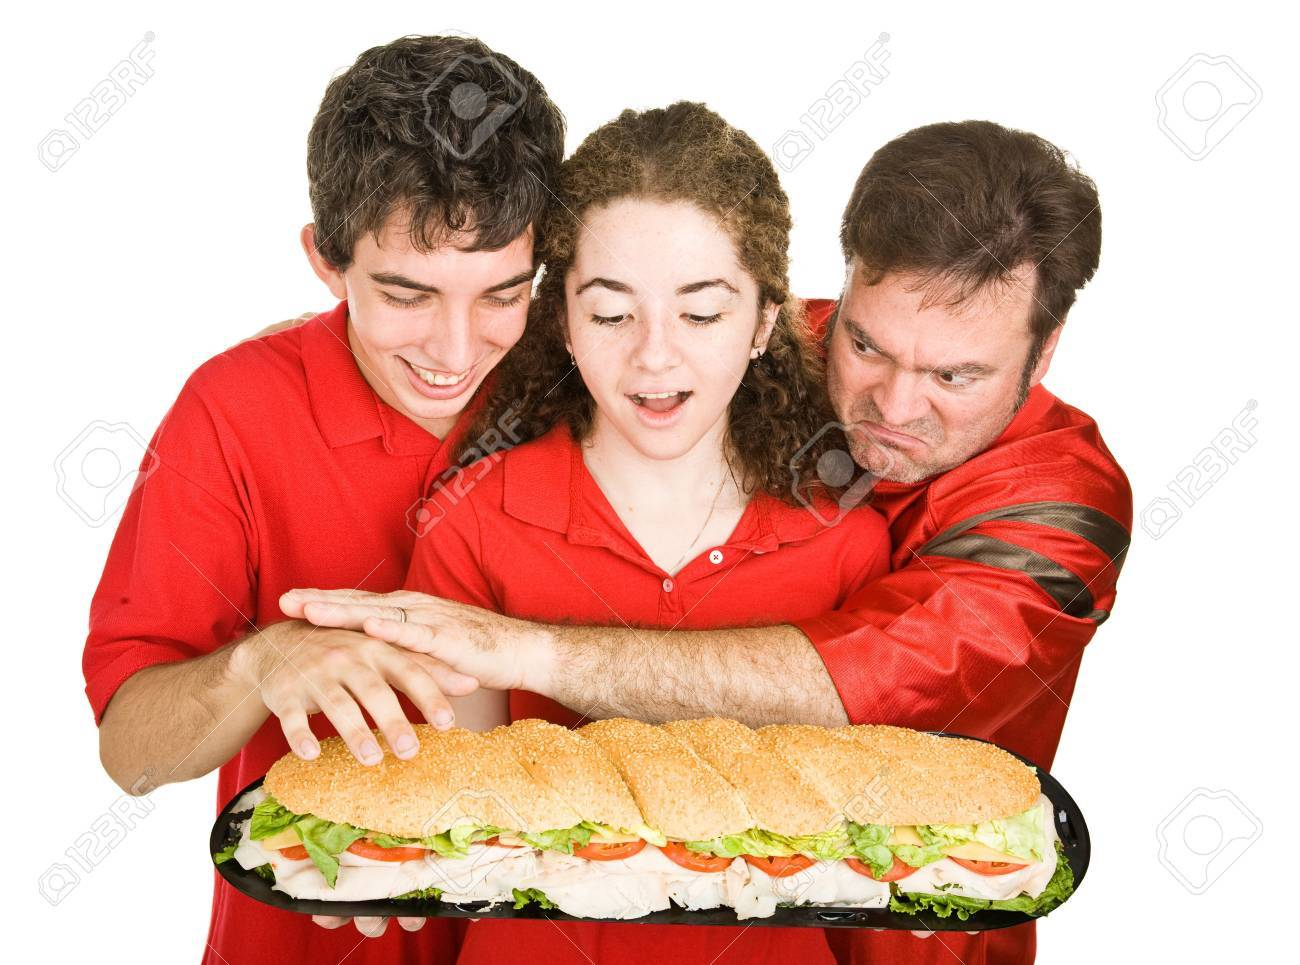 Hungry sports fans fighting eachother over a giant submarine sandwich. Isolated on white. Stock Photo - 3712015